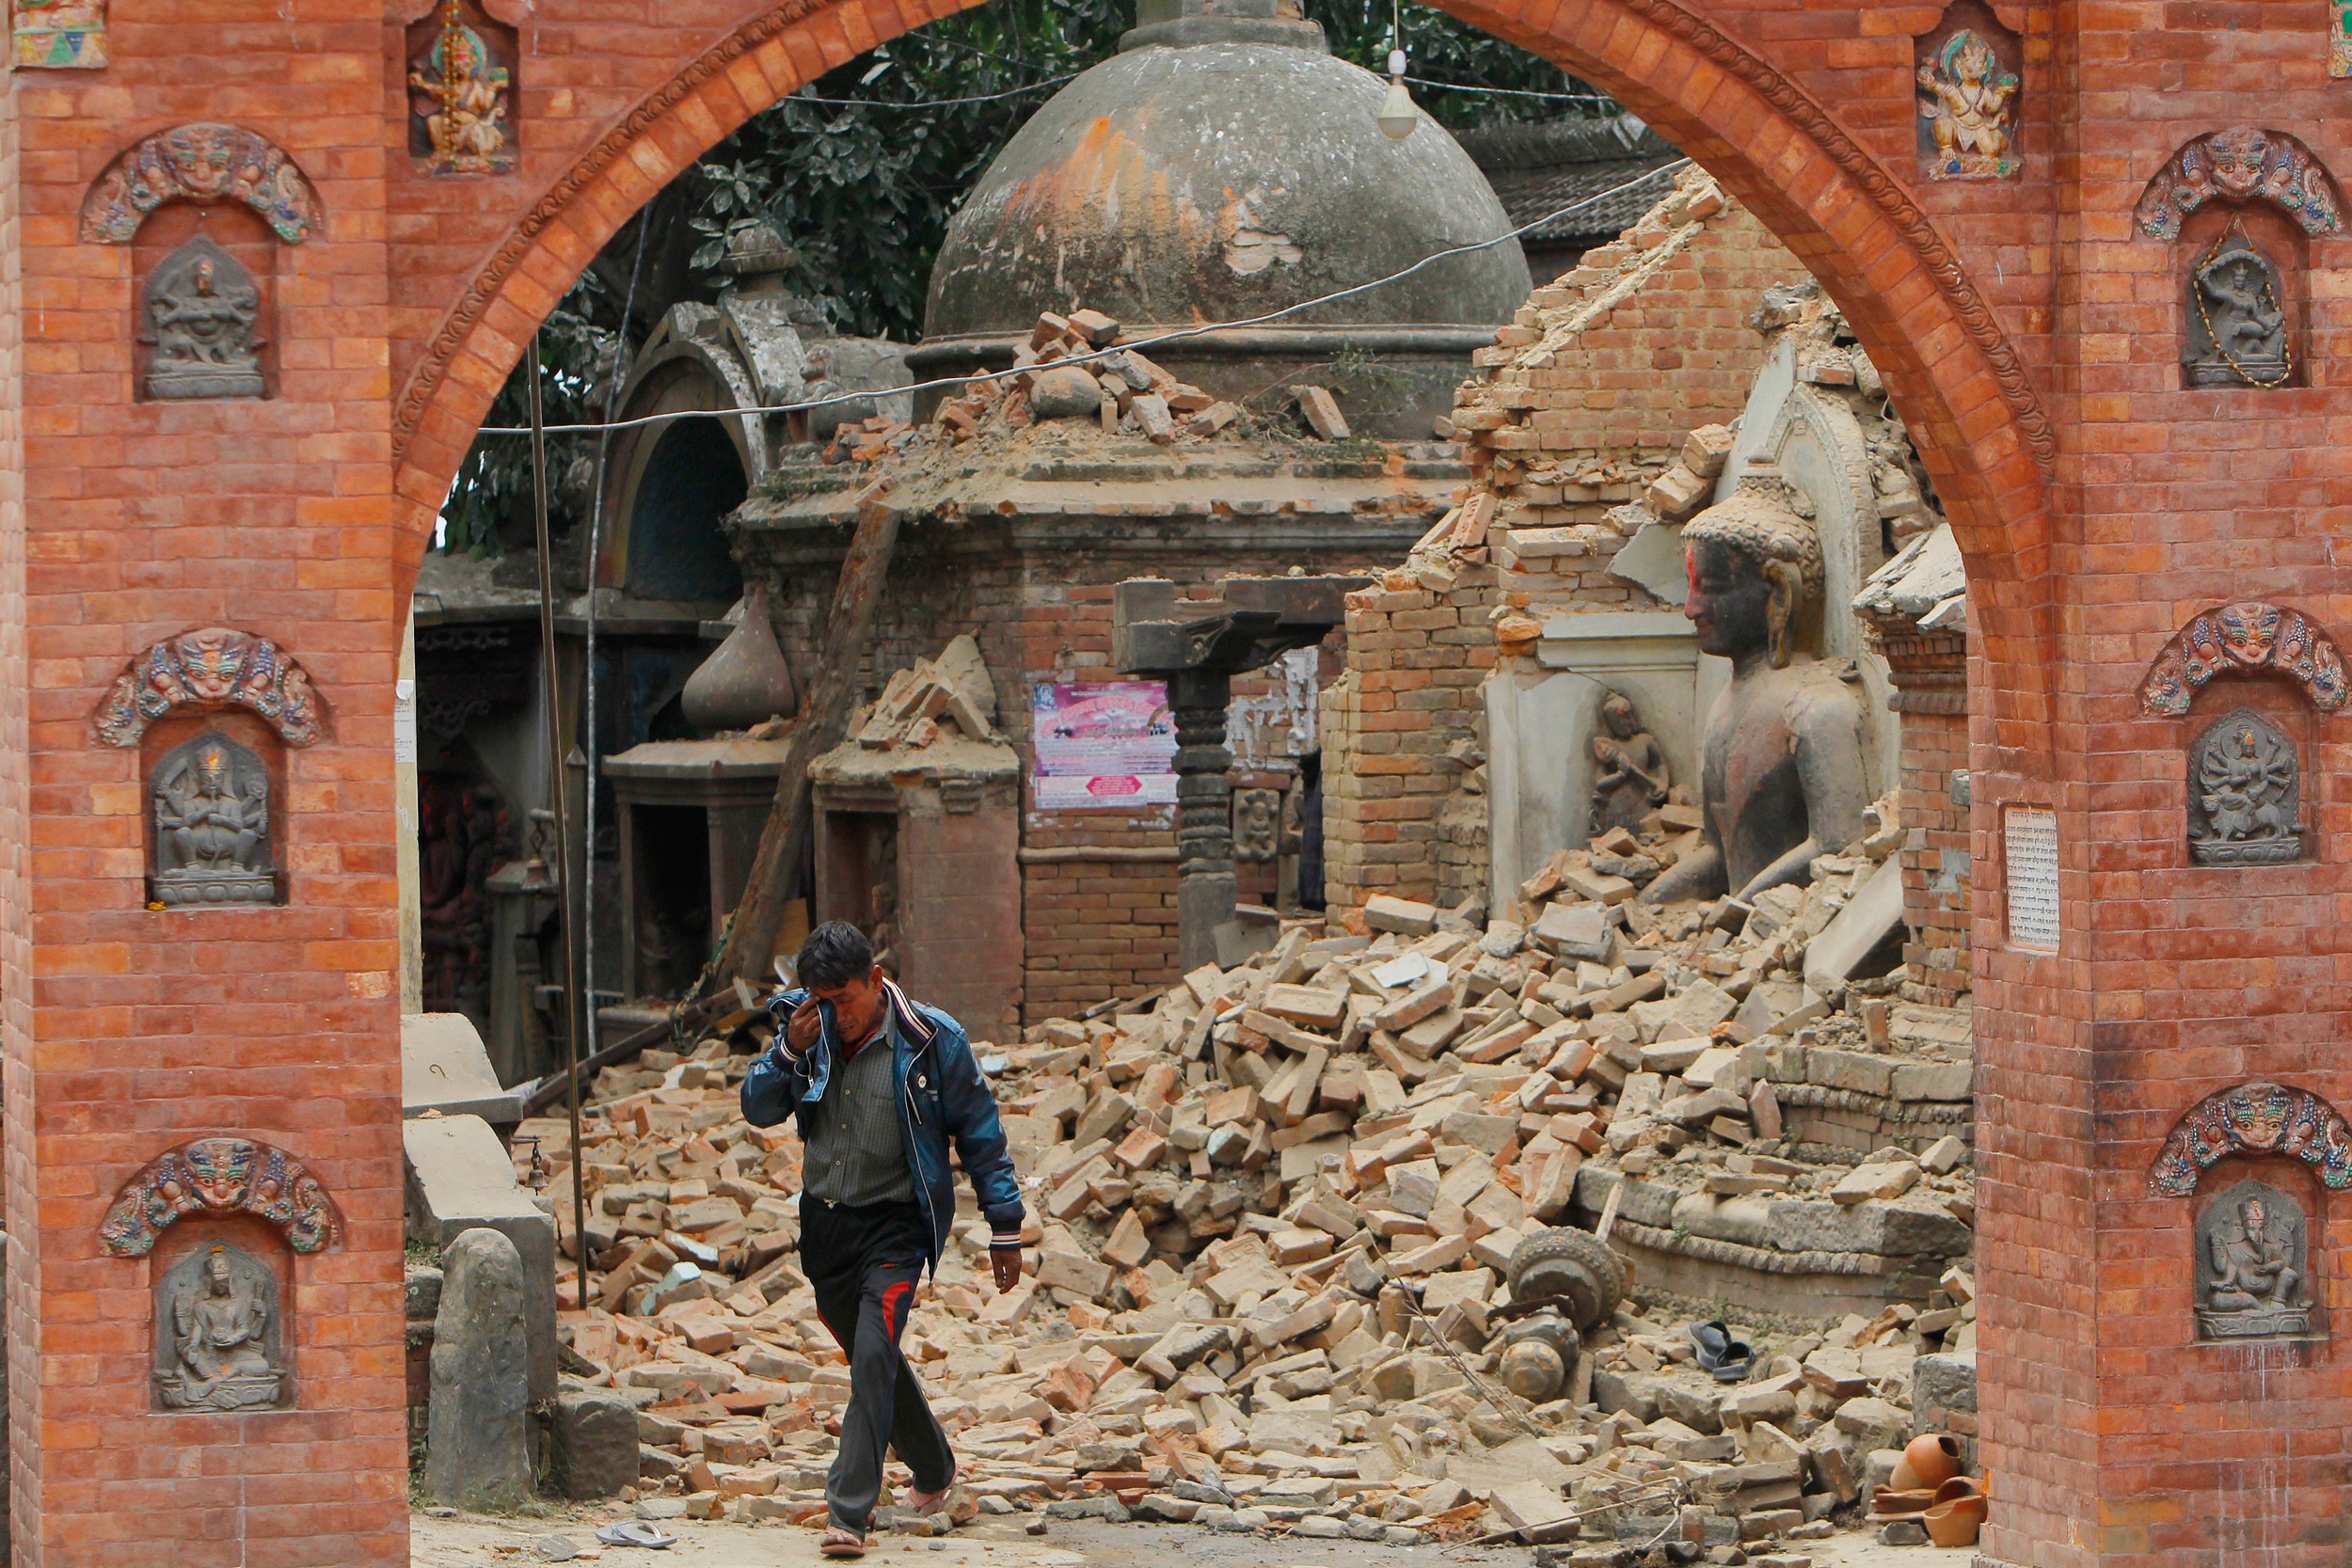 A Nepalese man cries as he walks through the earthquake debris inBhaktapur, near Kathmandu, Nepal, Sunday, April 26, 2015. A strong magnitude 7.8 earthquake shook Nepal's capital and the densely populated Kathmandu Valley before noon Saturday, causing extensive damage with toppled walls and collapsed buildings, officials said. (AP Photo/Niranjan Shrestha)